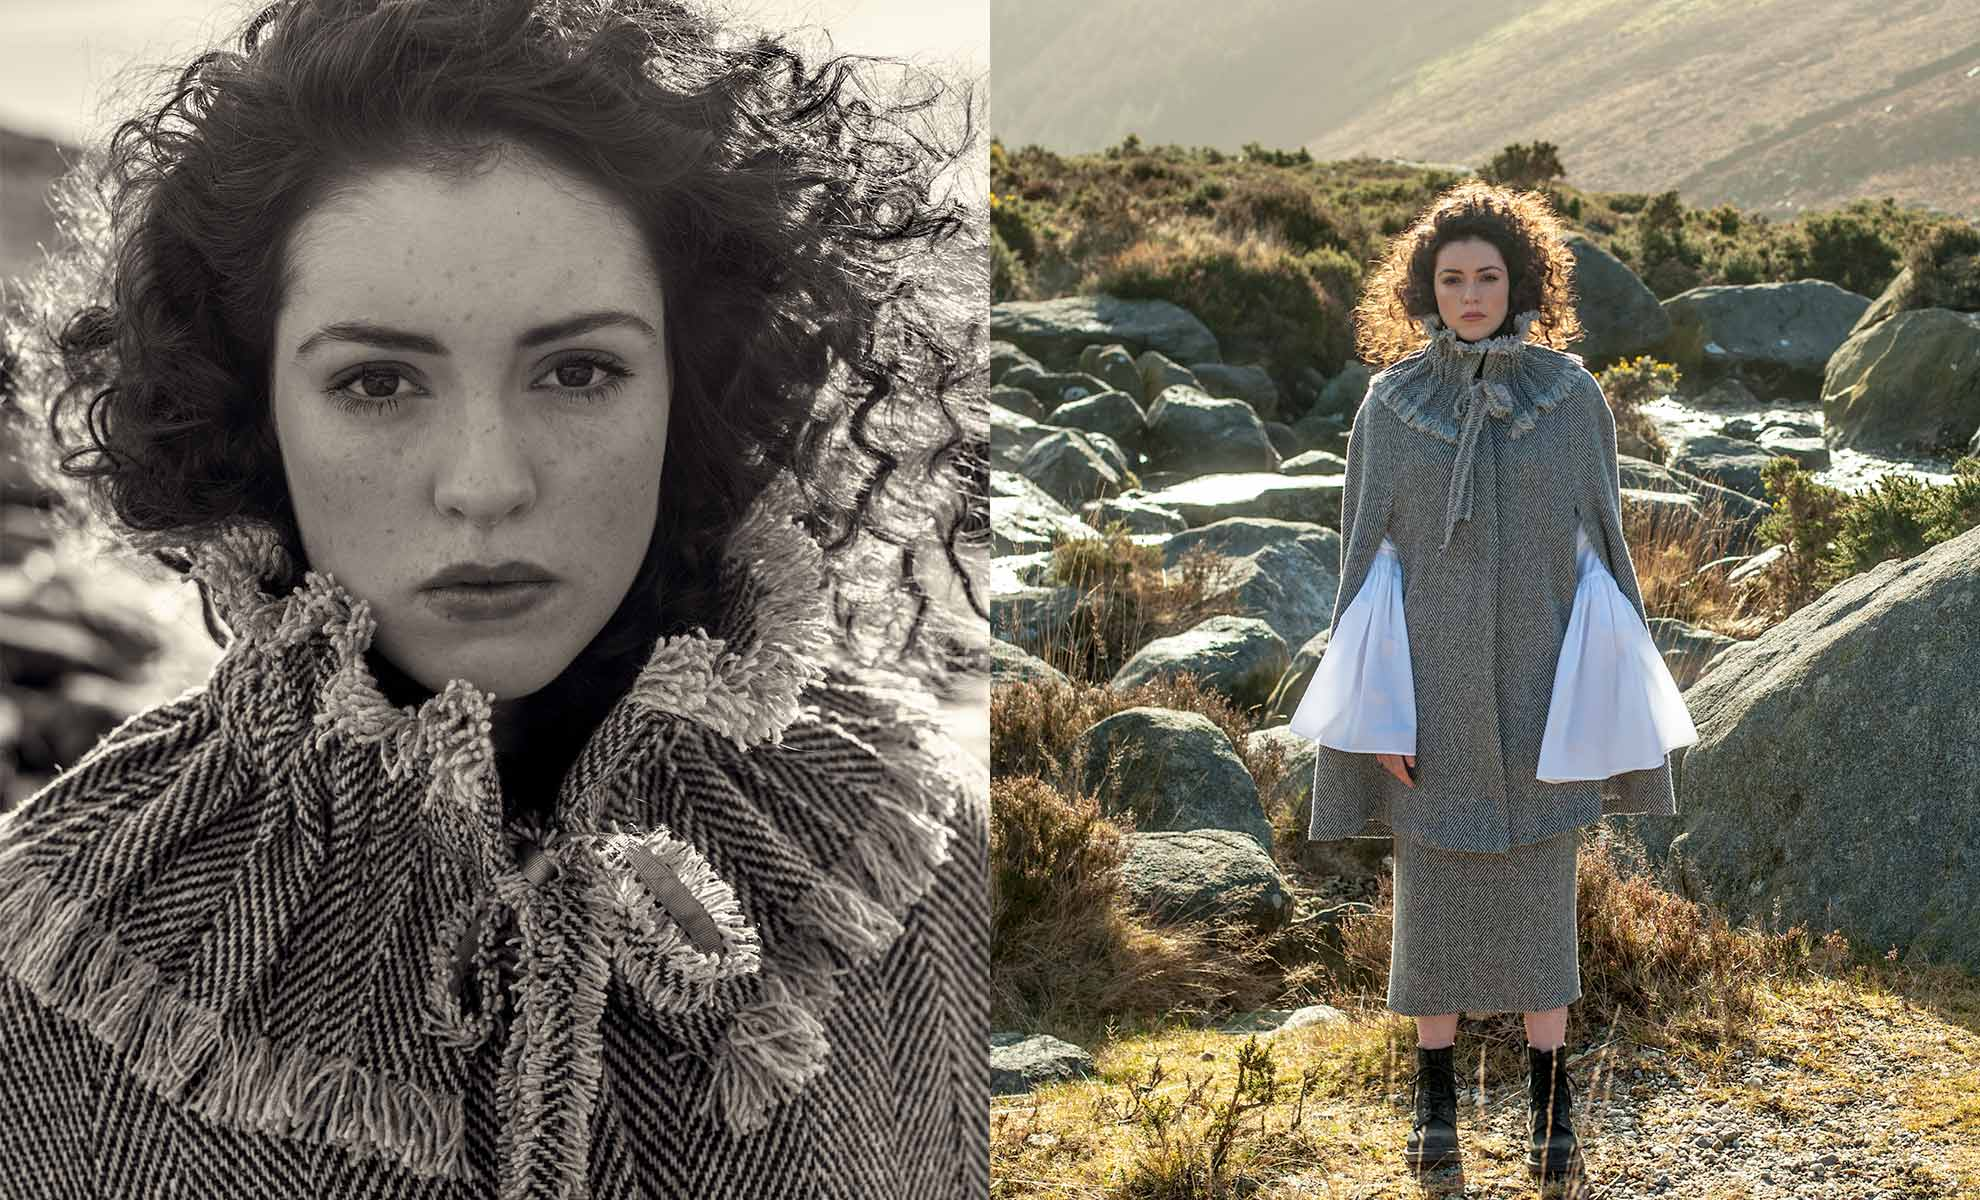 Irish Tweed fashion Collection shot on location in Ireland